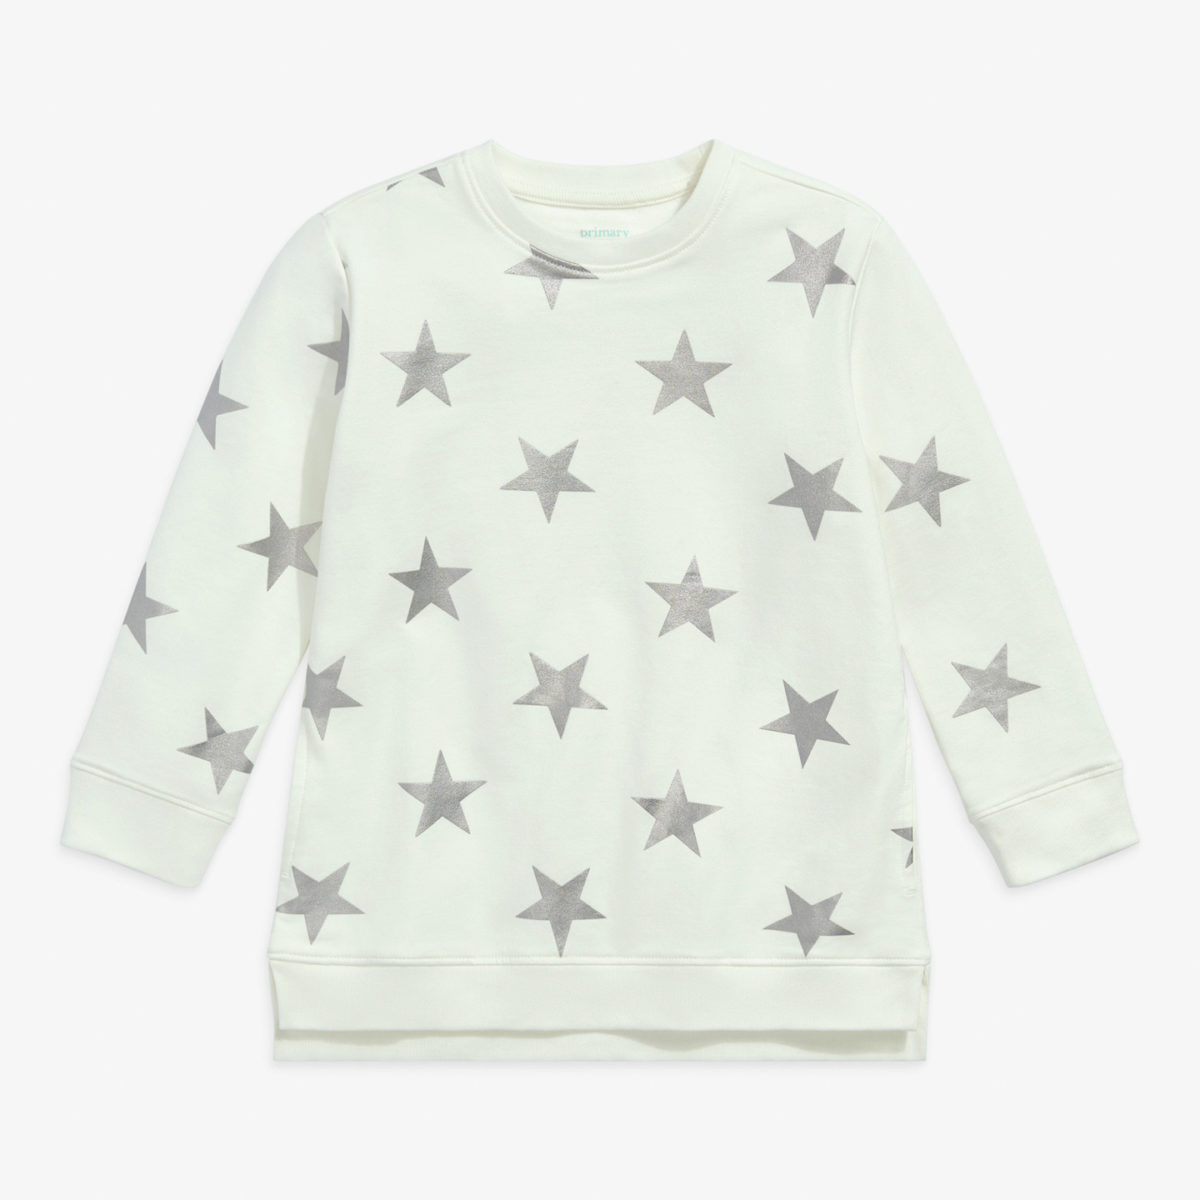 26 pieces of stylish clothing for your little ones to rock during the colder months